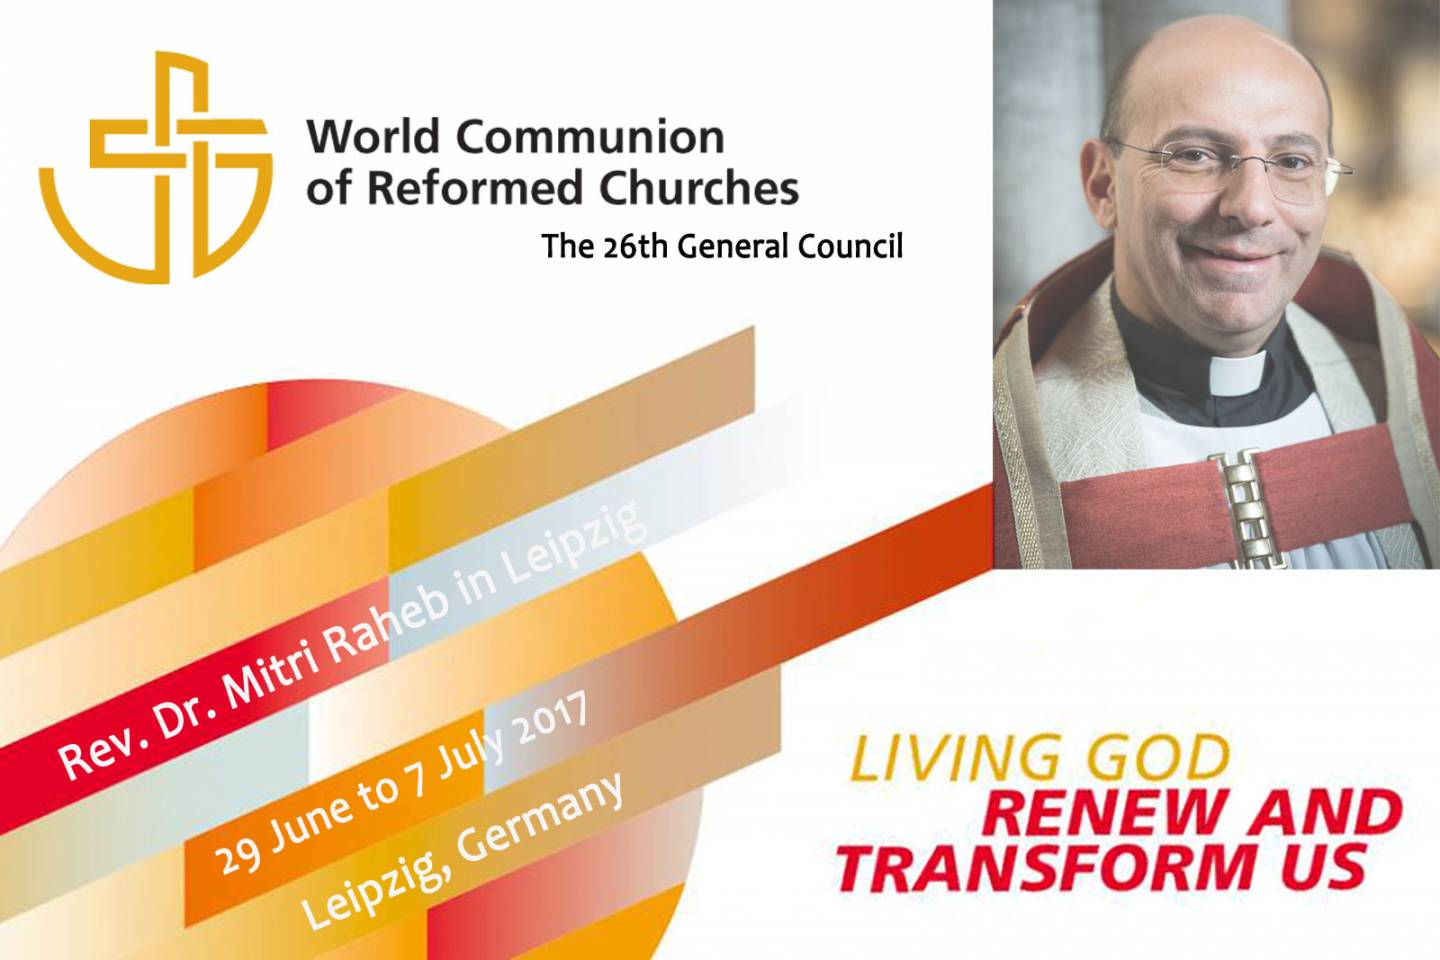 Dr. Raheb in the 26th General Council in Leipzig next week